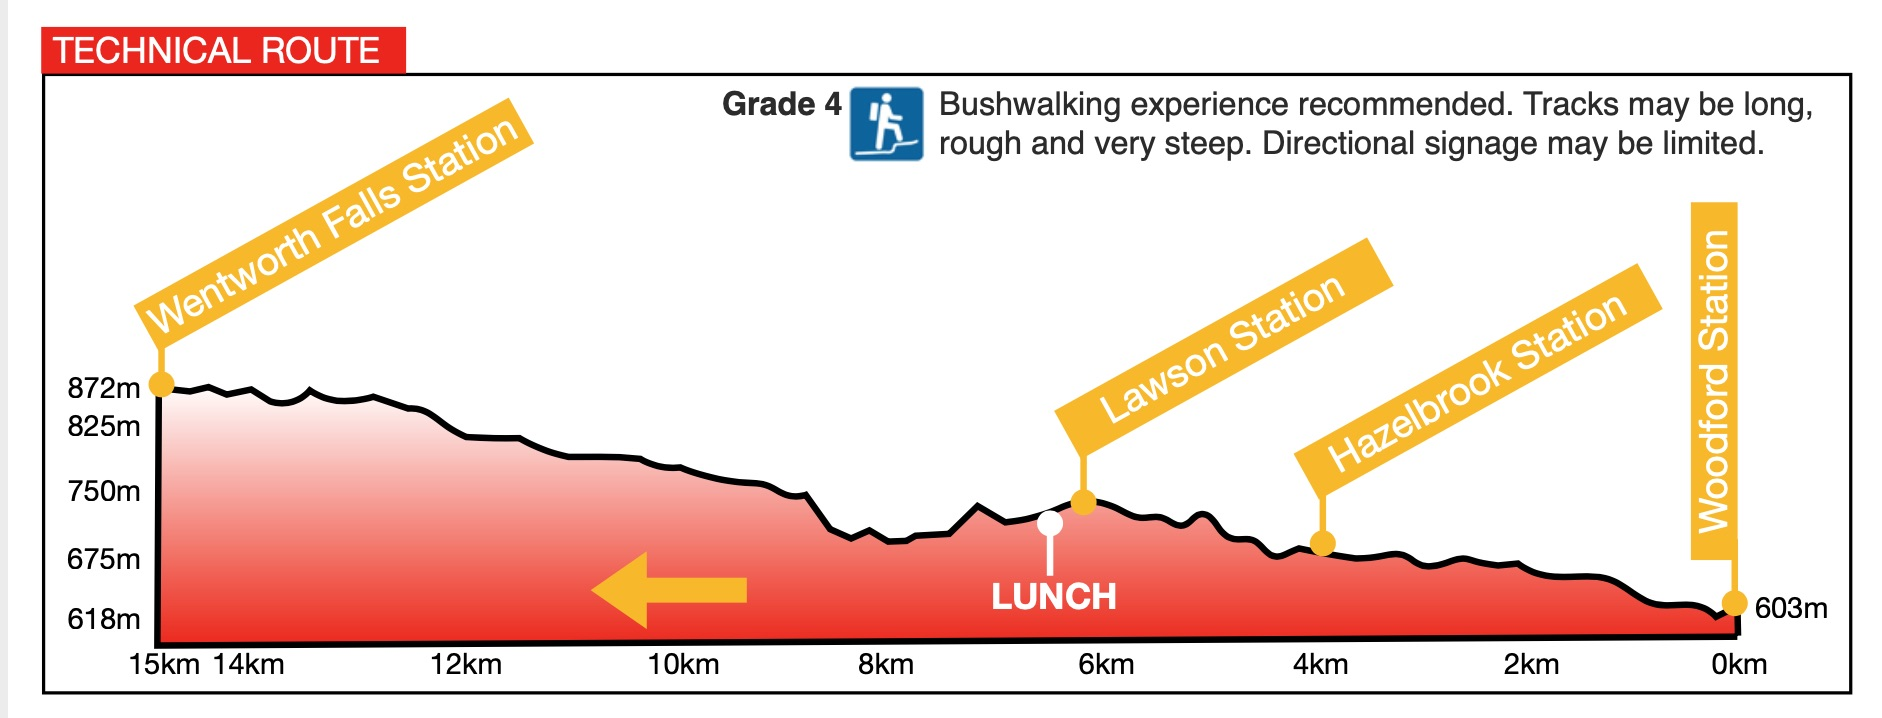 5 Day Walk Day 3 Technical Route elevation